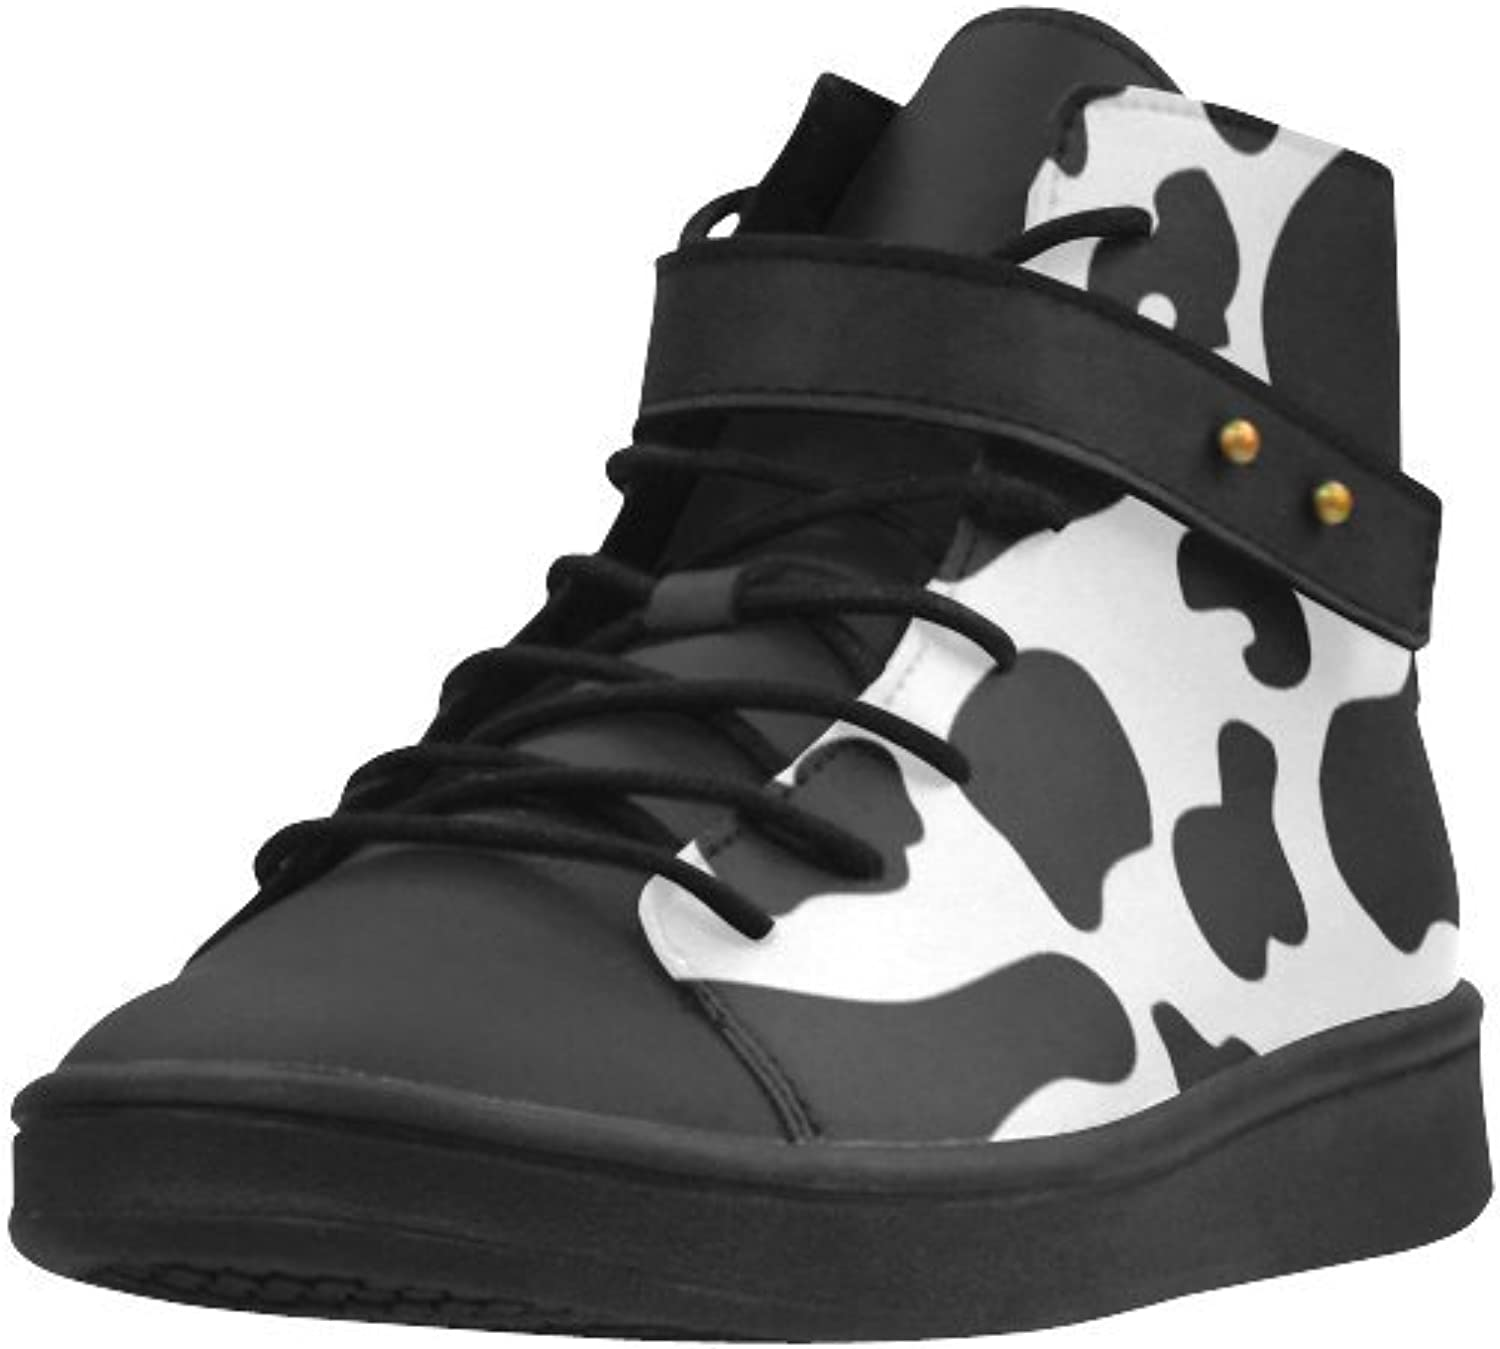 HUANGDAISY Cow Pattern Black and White Round Toe Grain Leather Foamed Insole shoes for Women